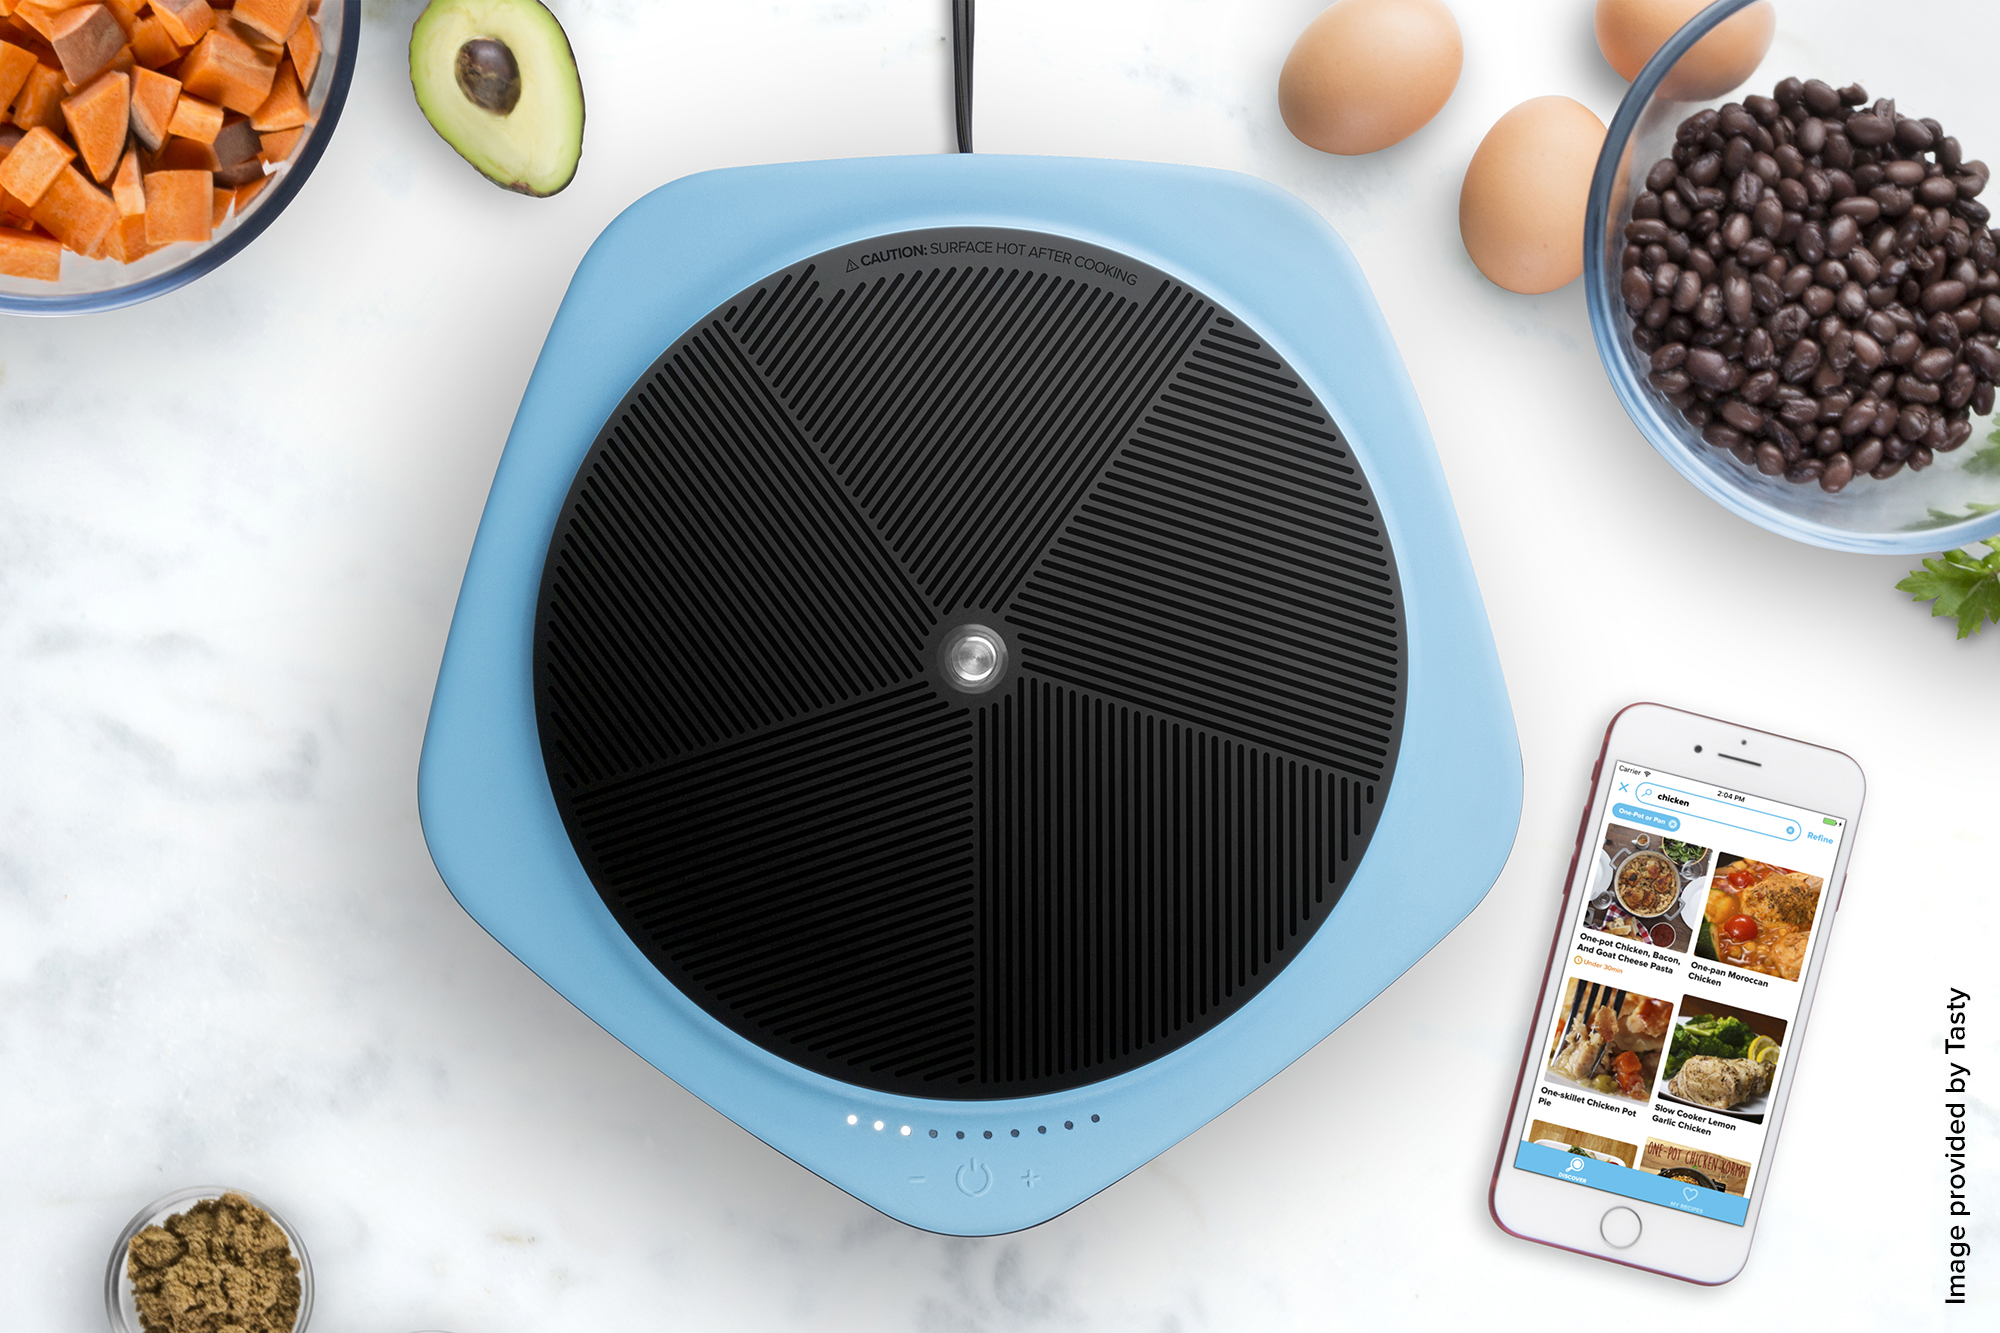 Buzzfeed builds a full-fledged small appliance around Tasty brand